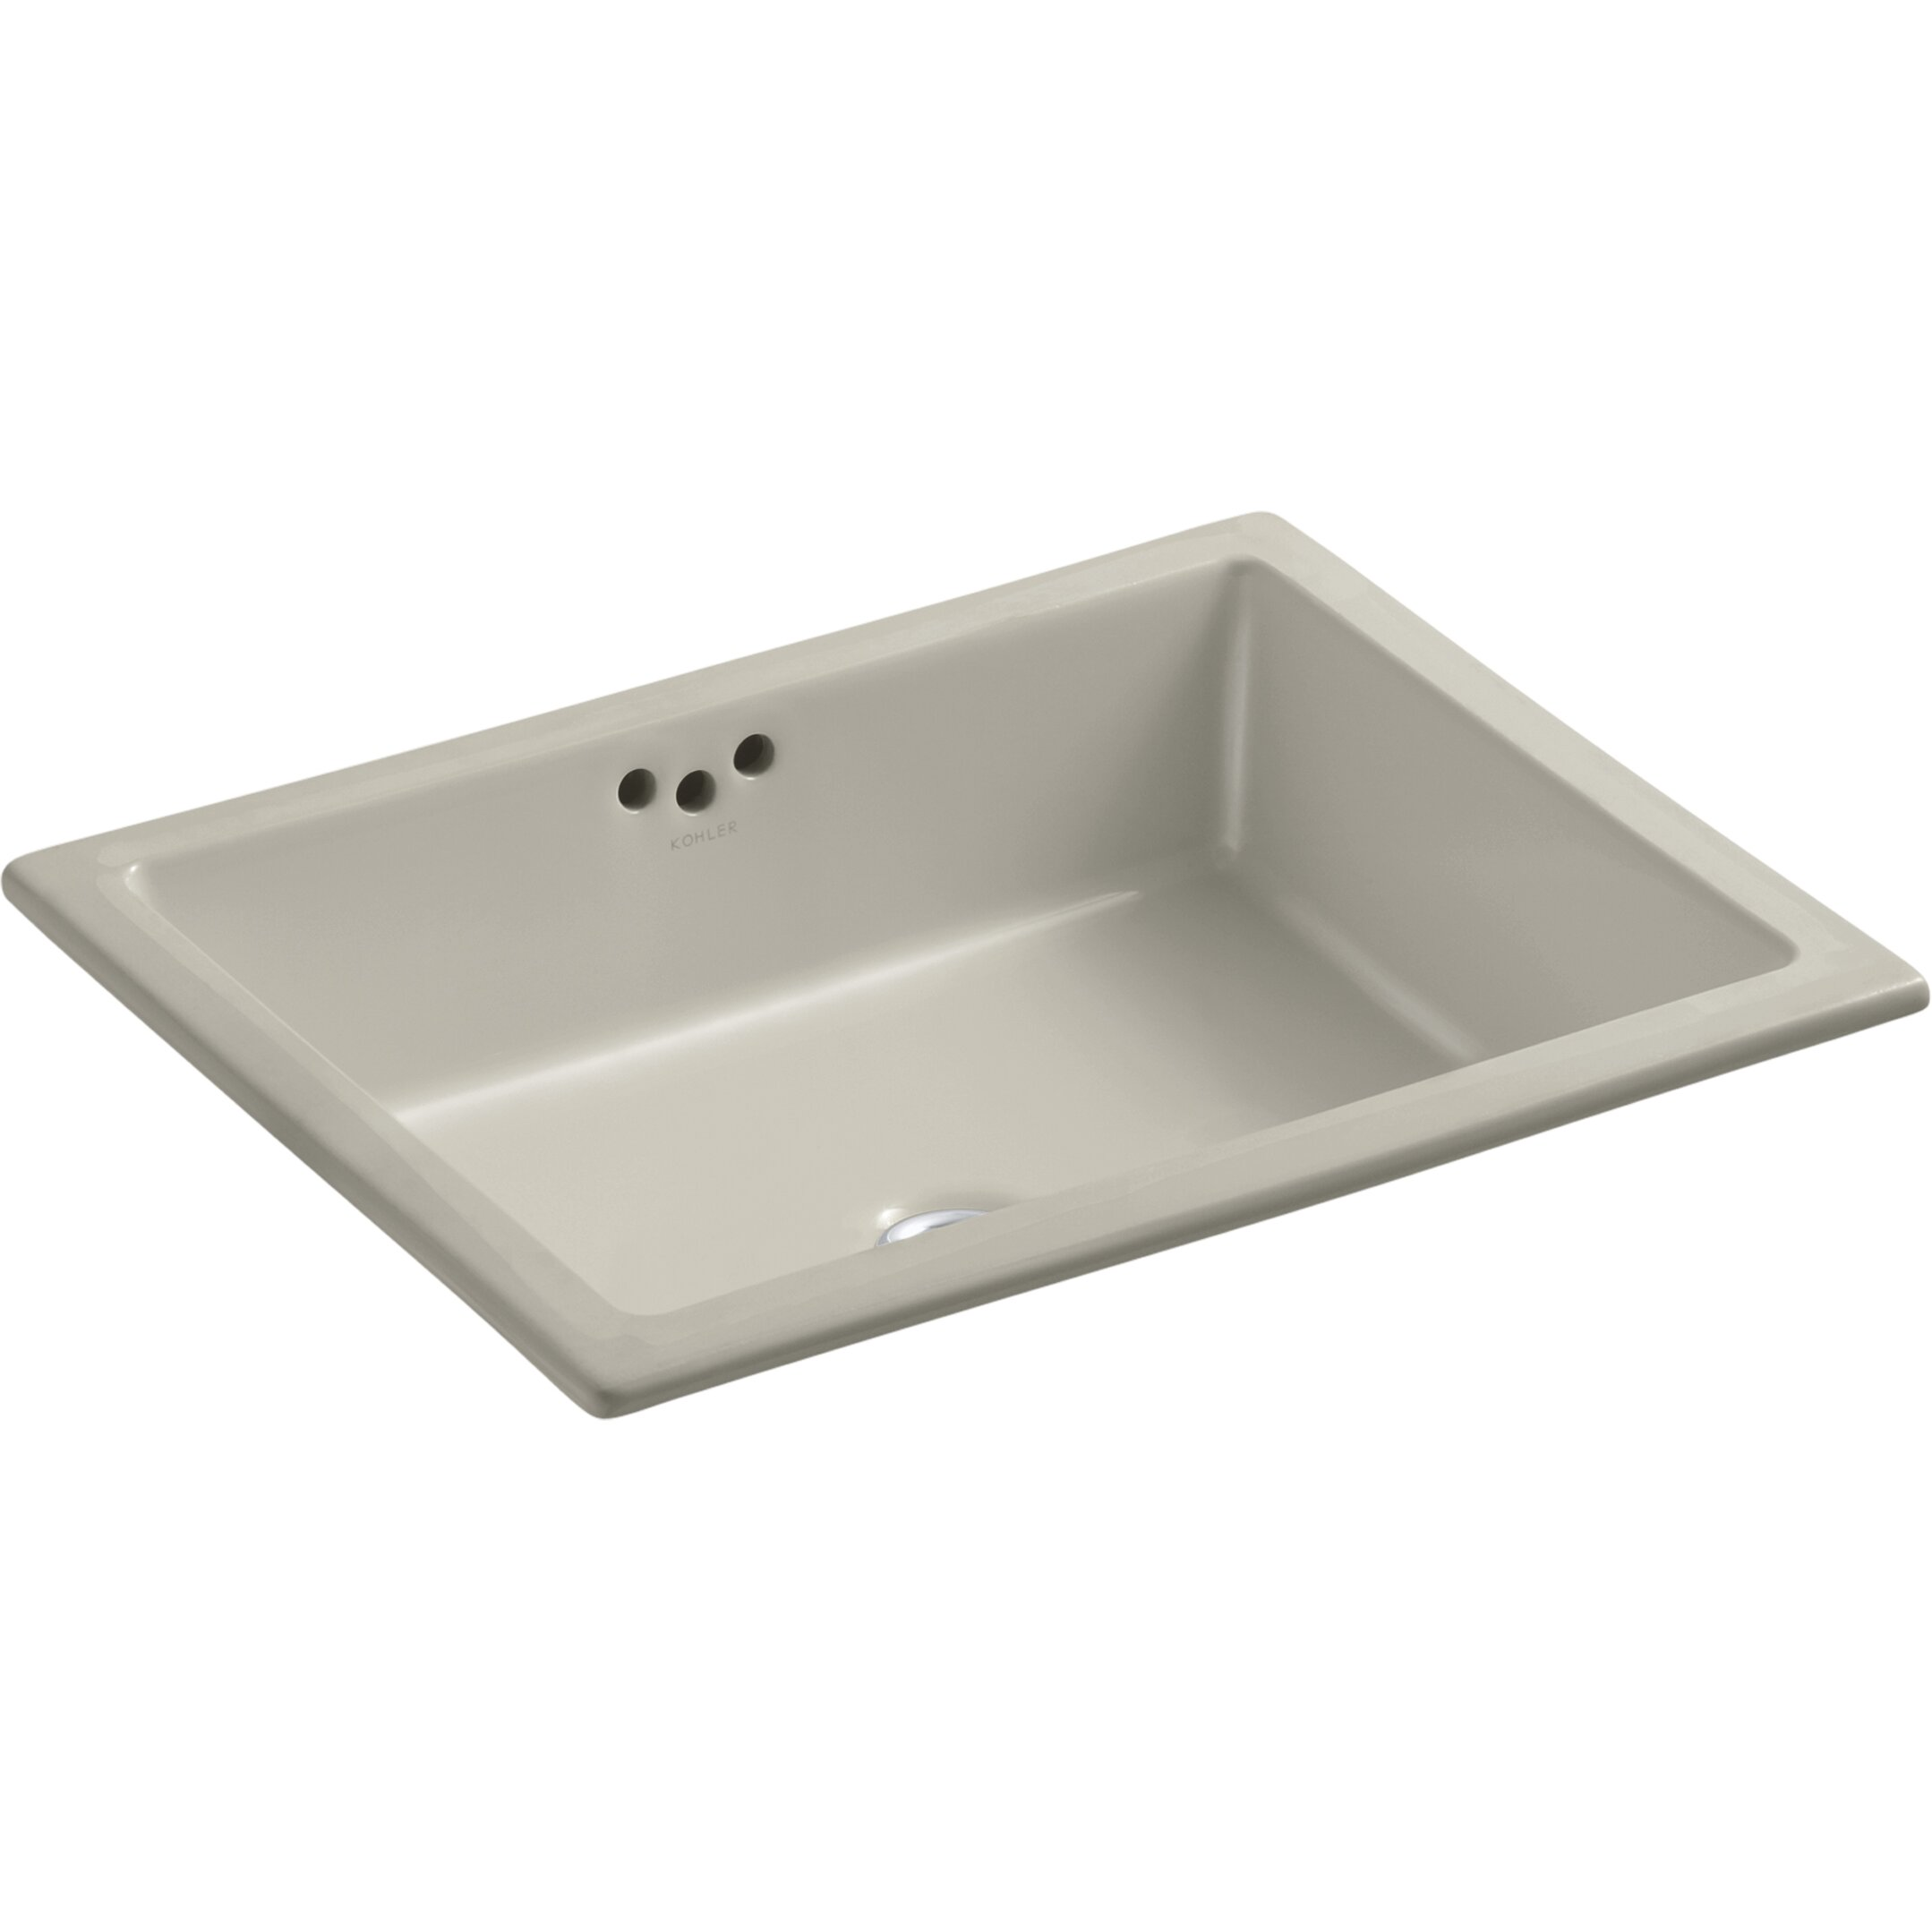 Kohler Kathryn 19 3 4 X 15 5 8 X 6 1 4 Undermount Bathroom Sink Reviews Wayfair